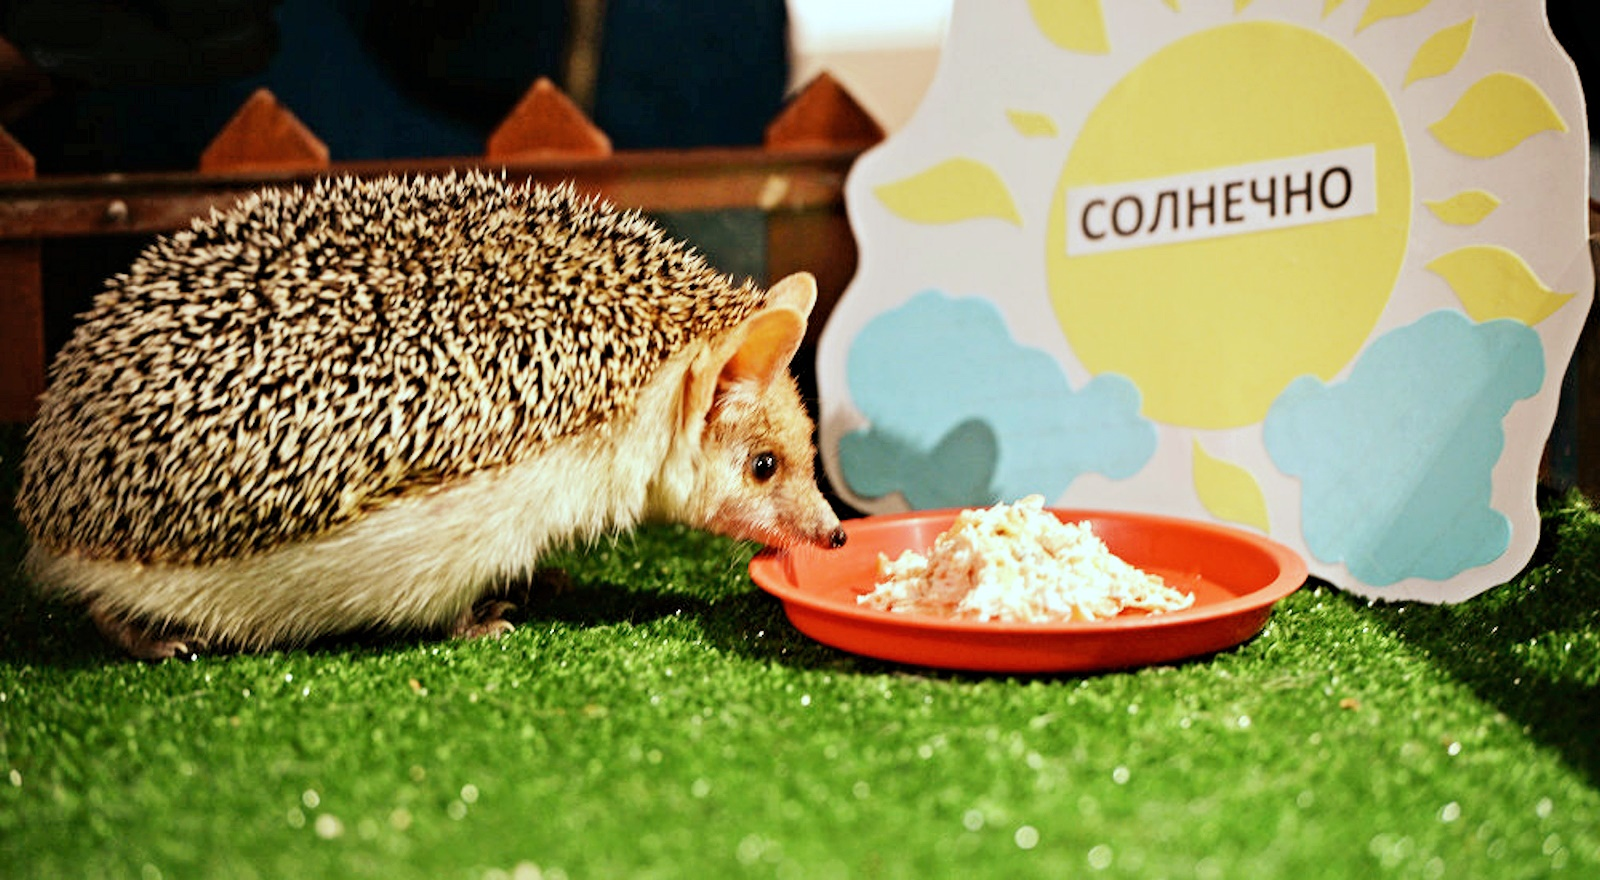 00 Pugovka the Hedgehog. Groundhog Day. Russia. Yekaterinburg Zoo. 03.02.15